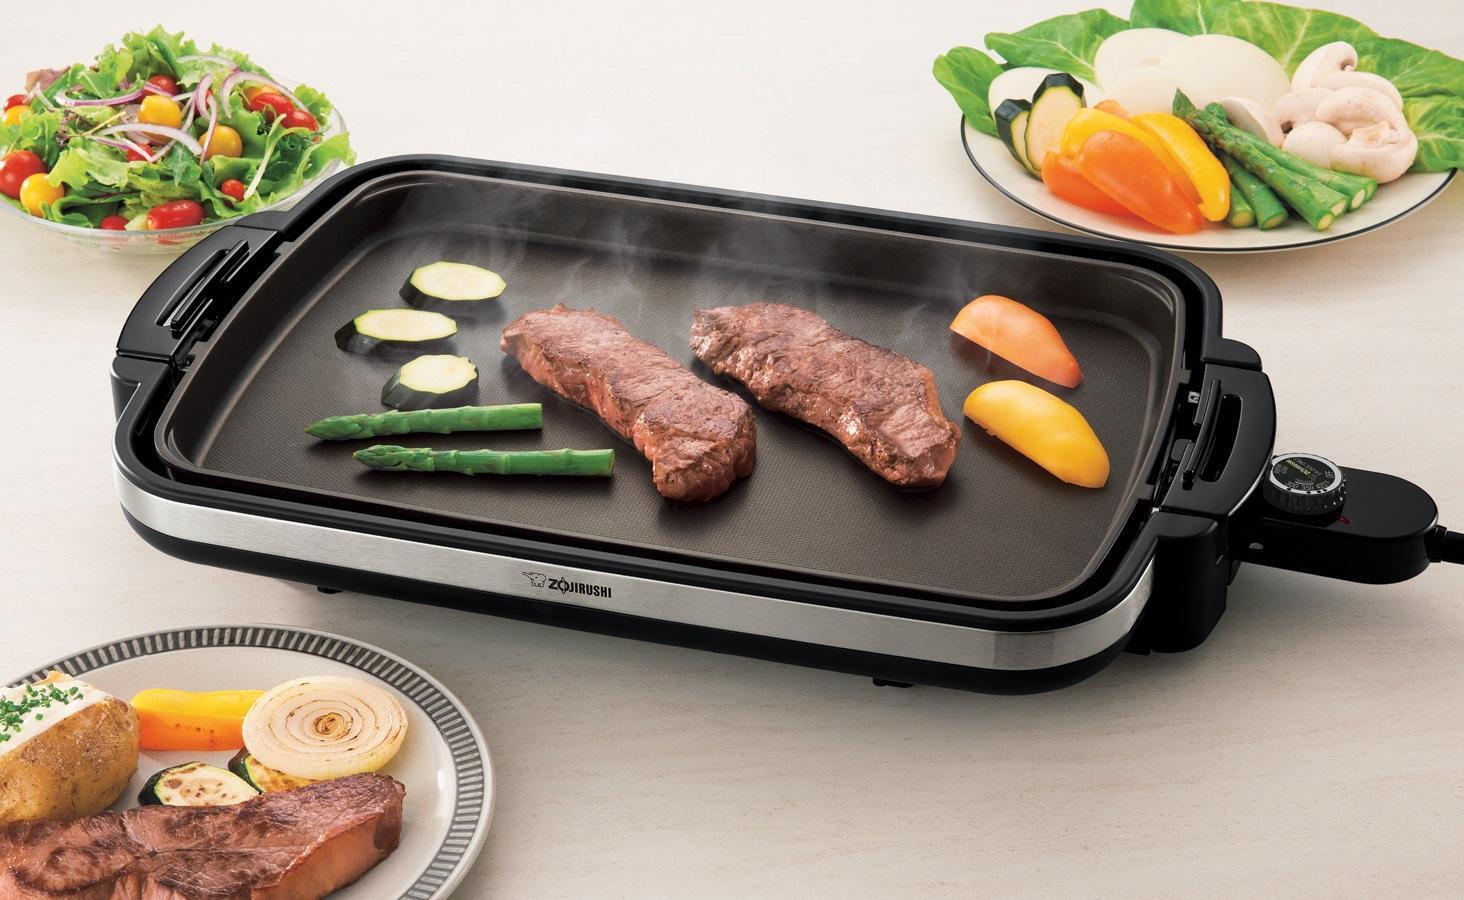 Gourmet Sizzler Electric Griddle Zojirushi EA-DCC10